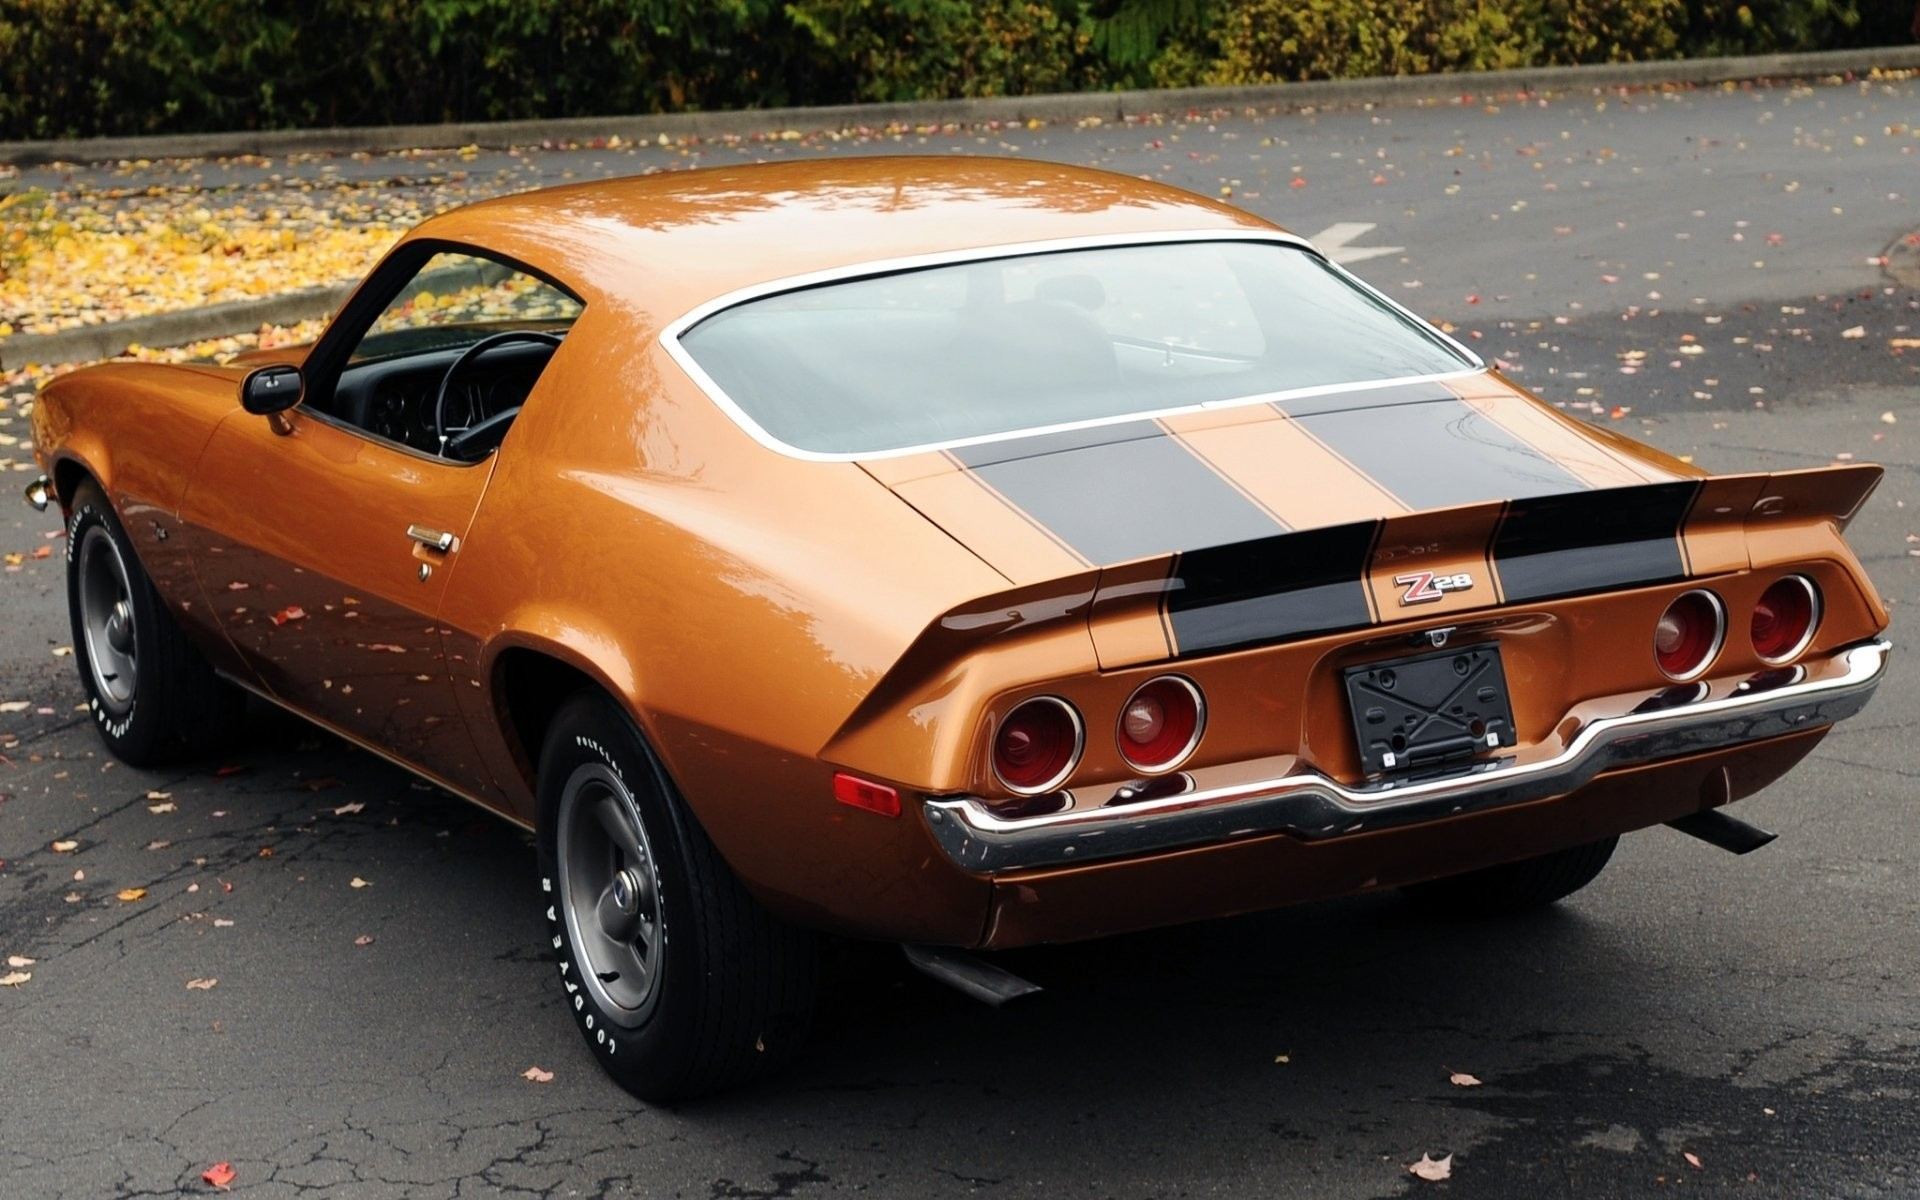 1920x1200 chevrolet camaro z28 1971 chevrolet camaro coupe rear view orange muscle  car muscle car leaves background